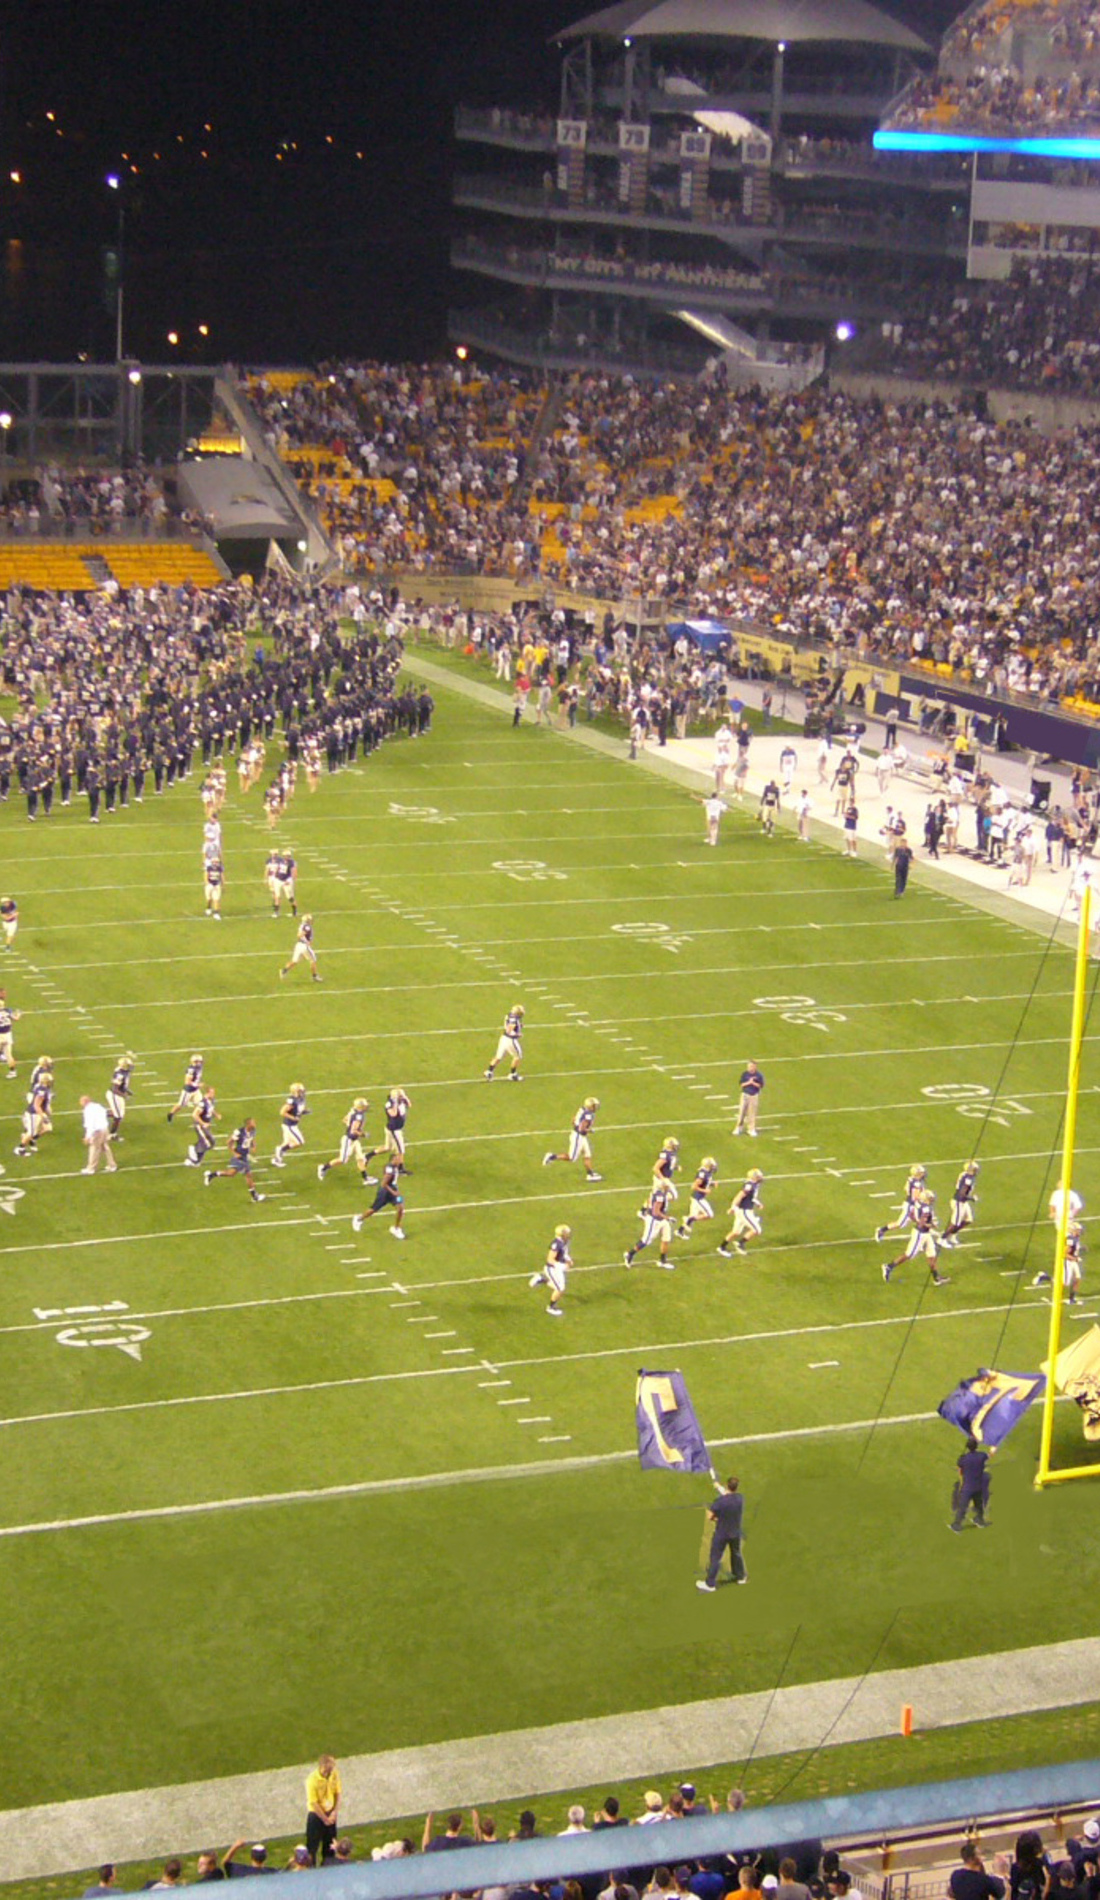 A Pittsburgh Panthers Football live event